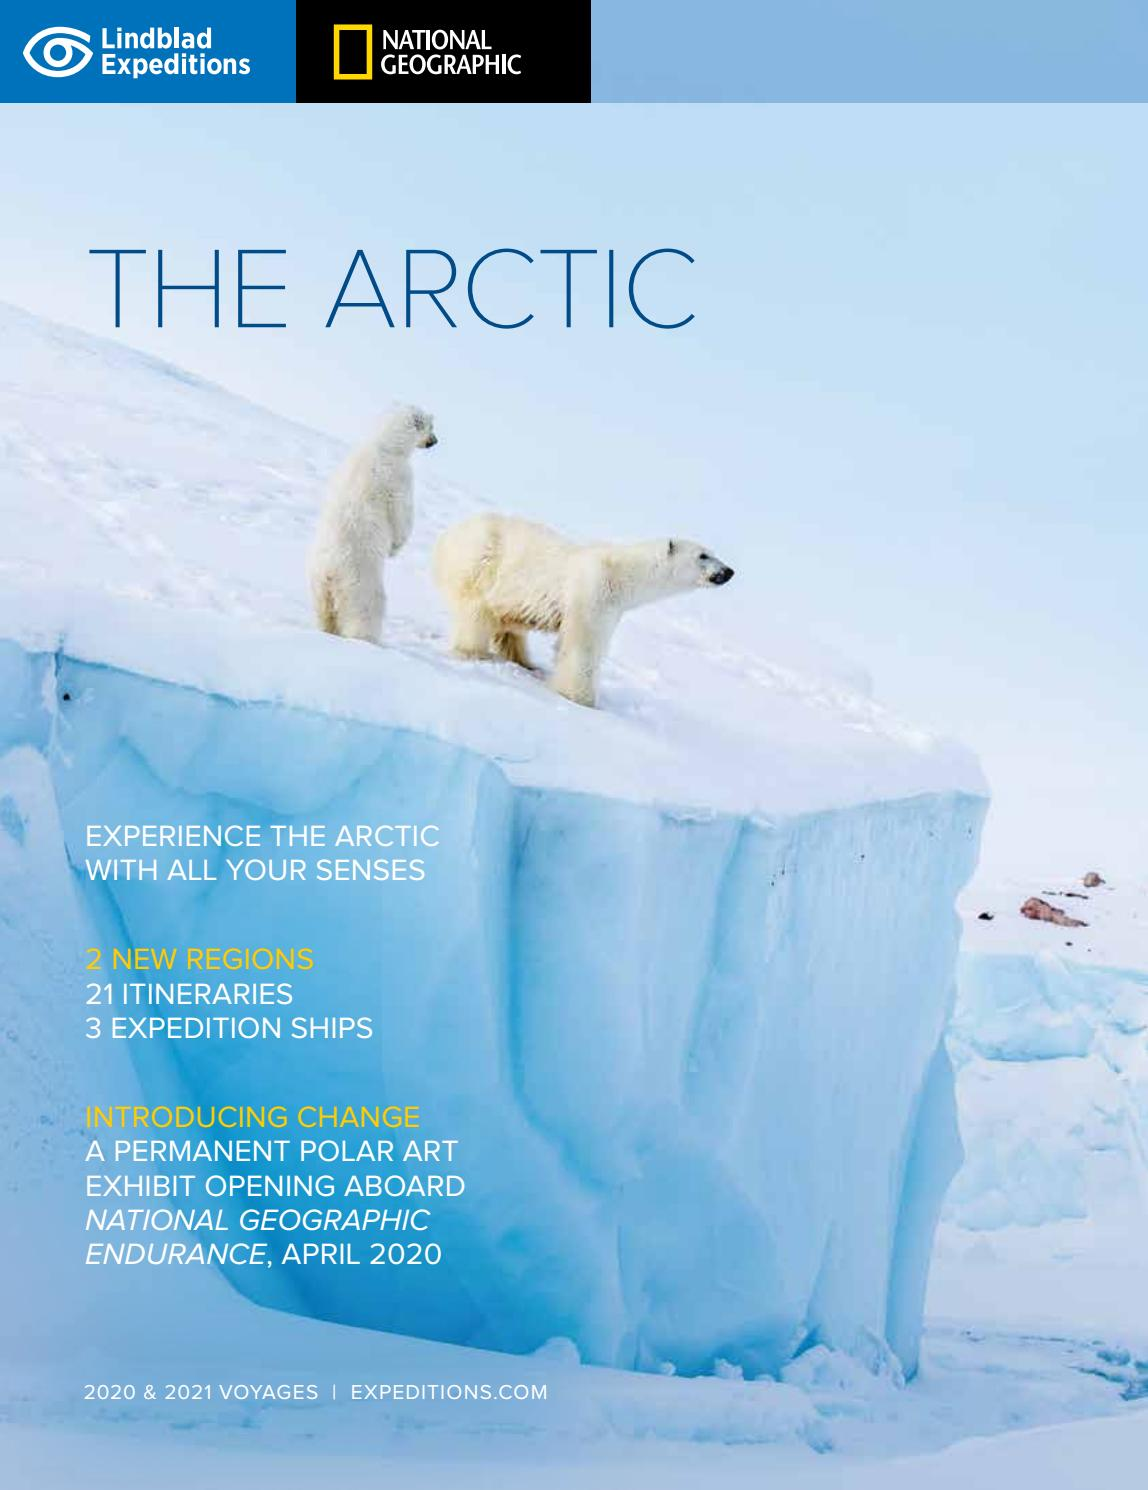 Lindblad Expeditions: The Arctic